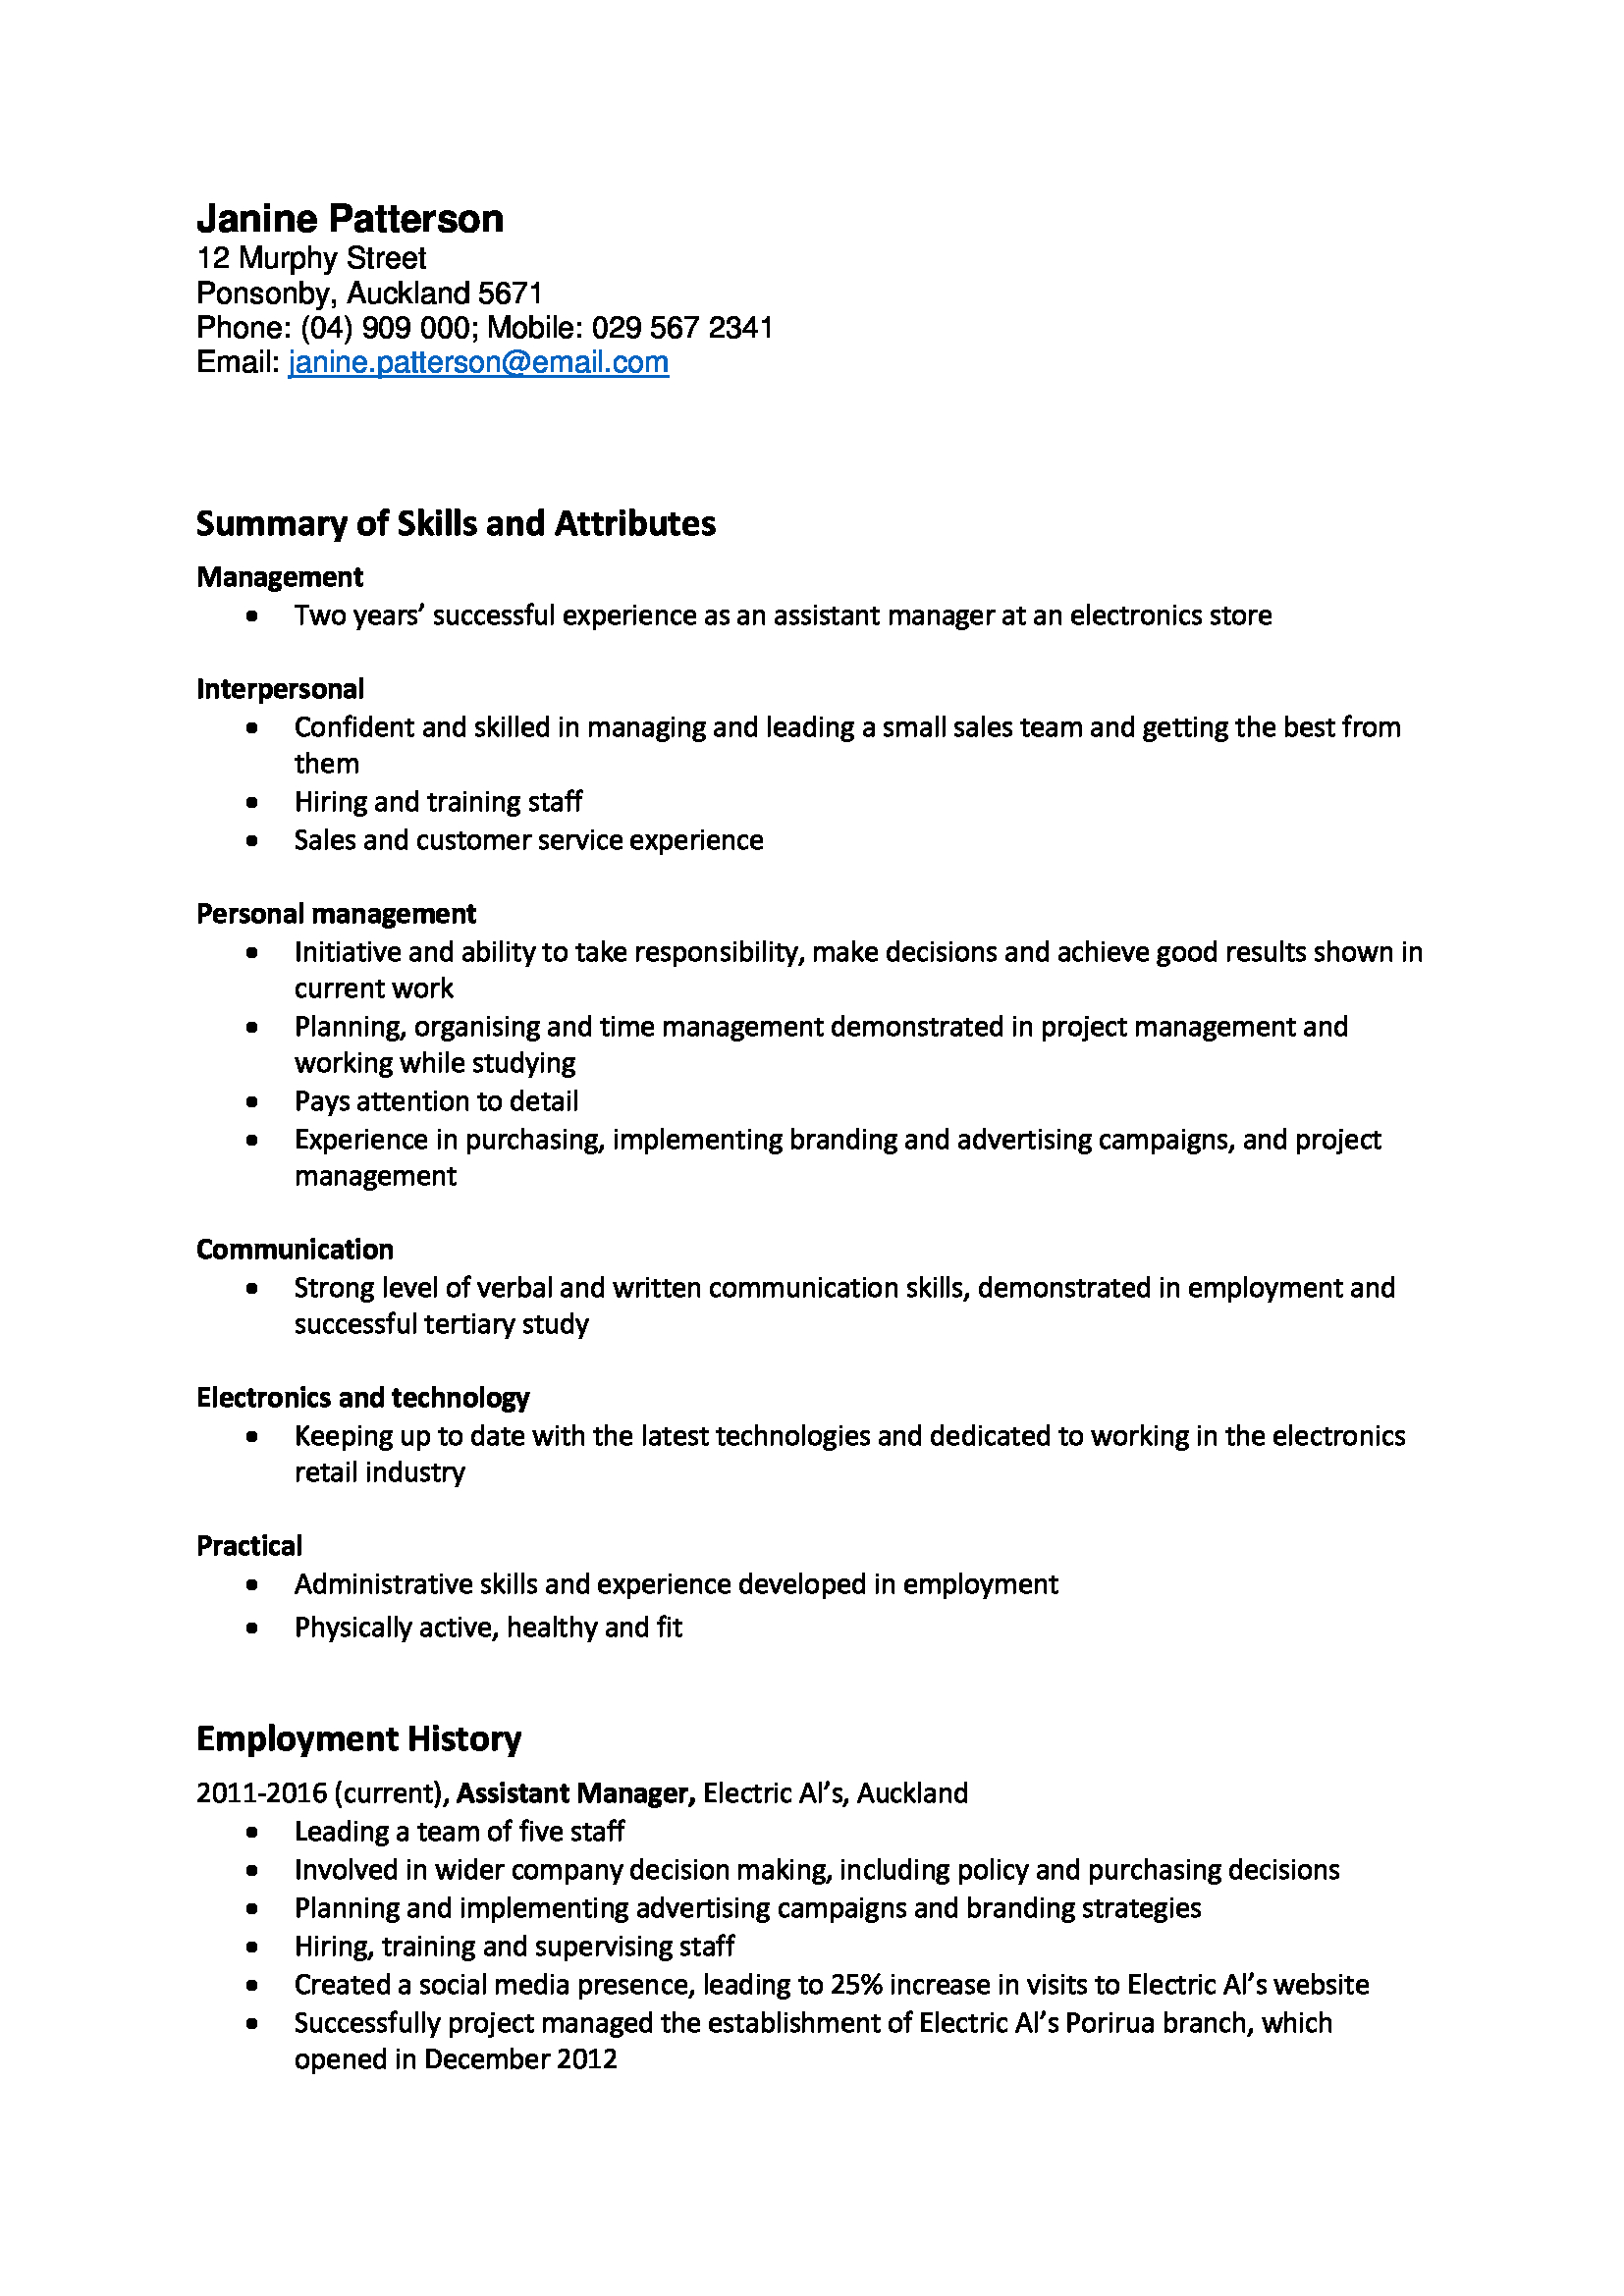 Sample resume new zealand